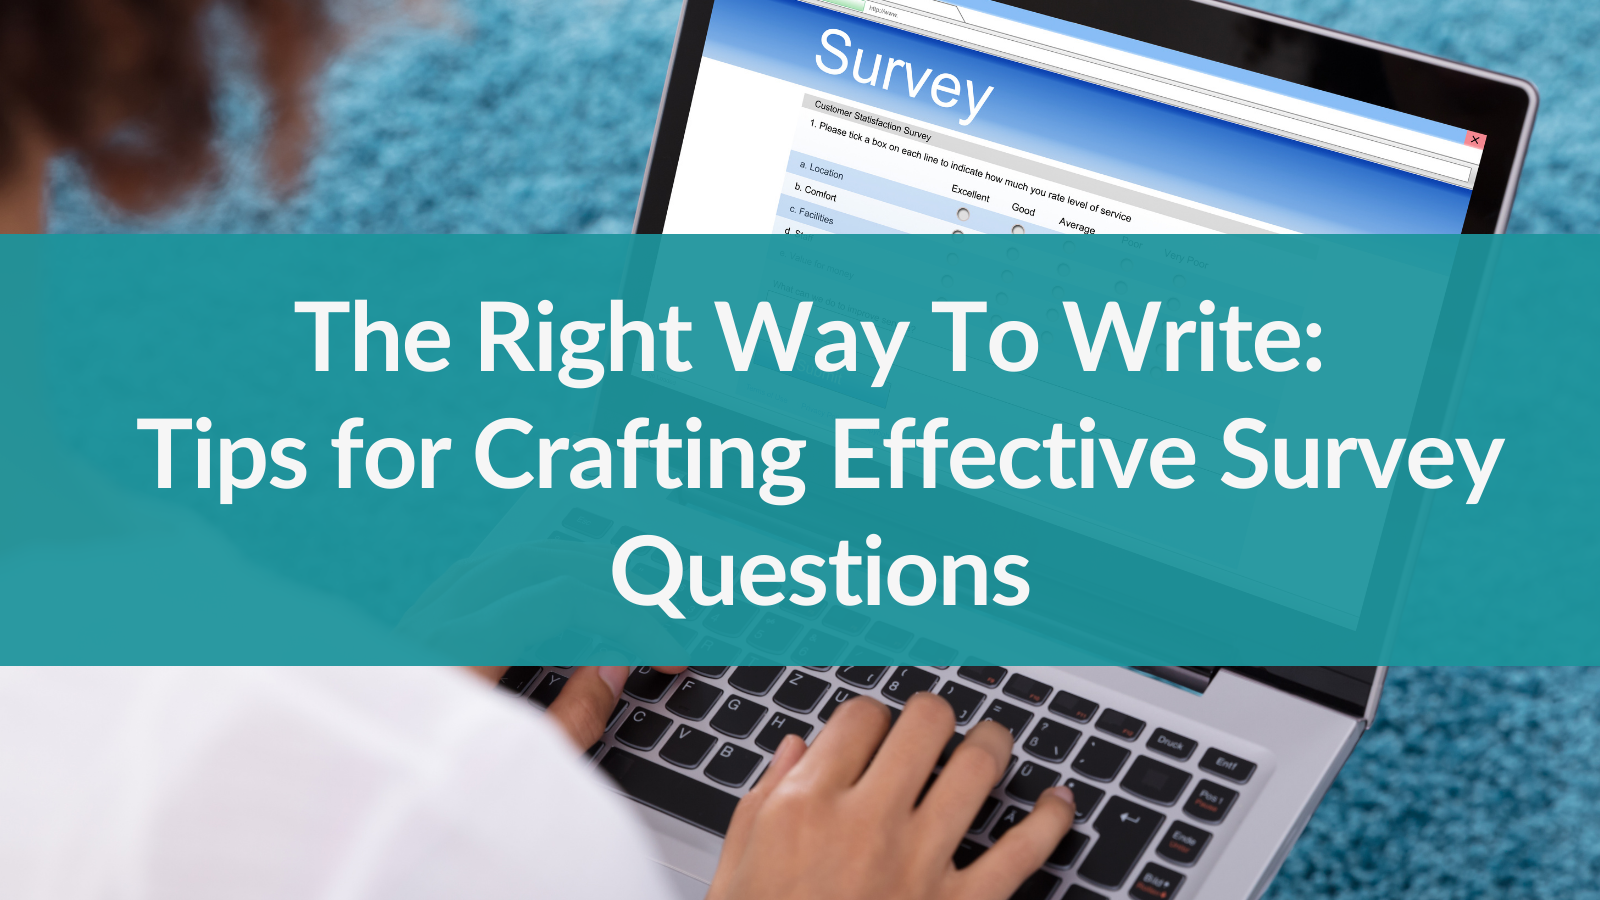 How to write an effective survey